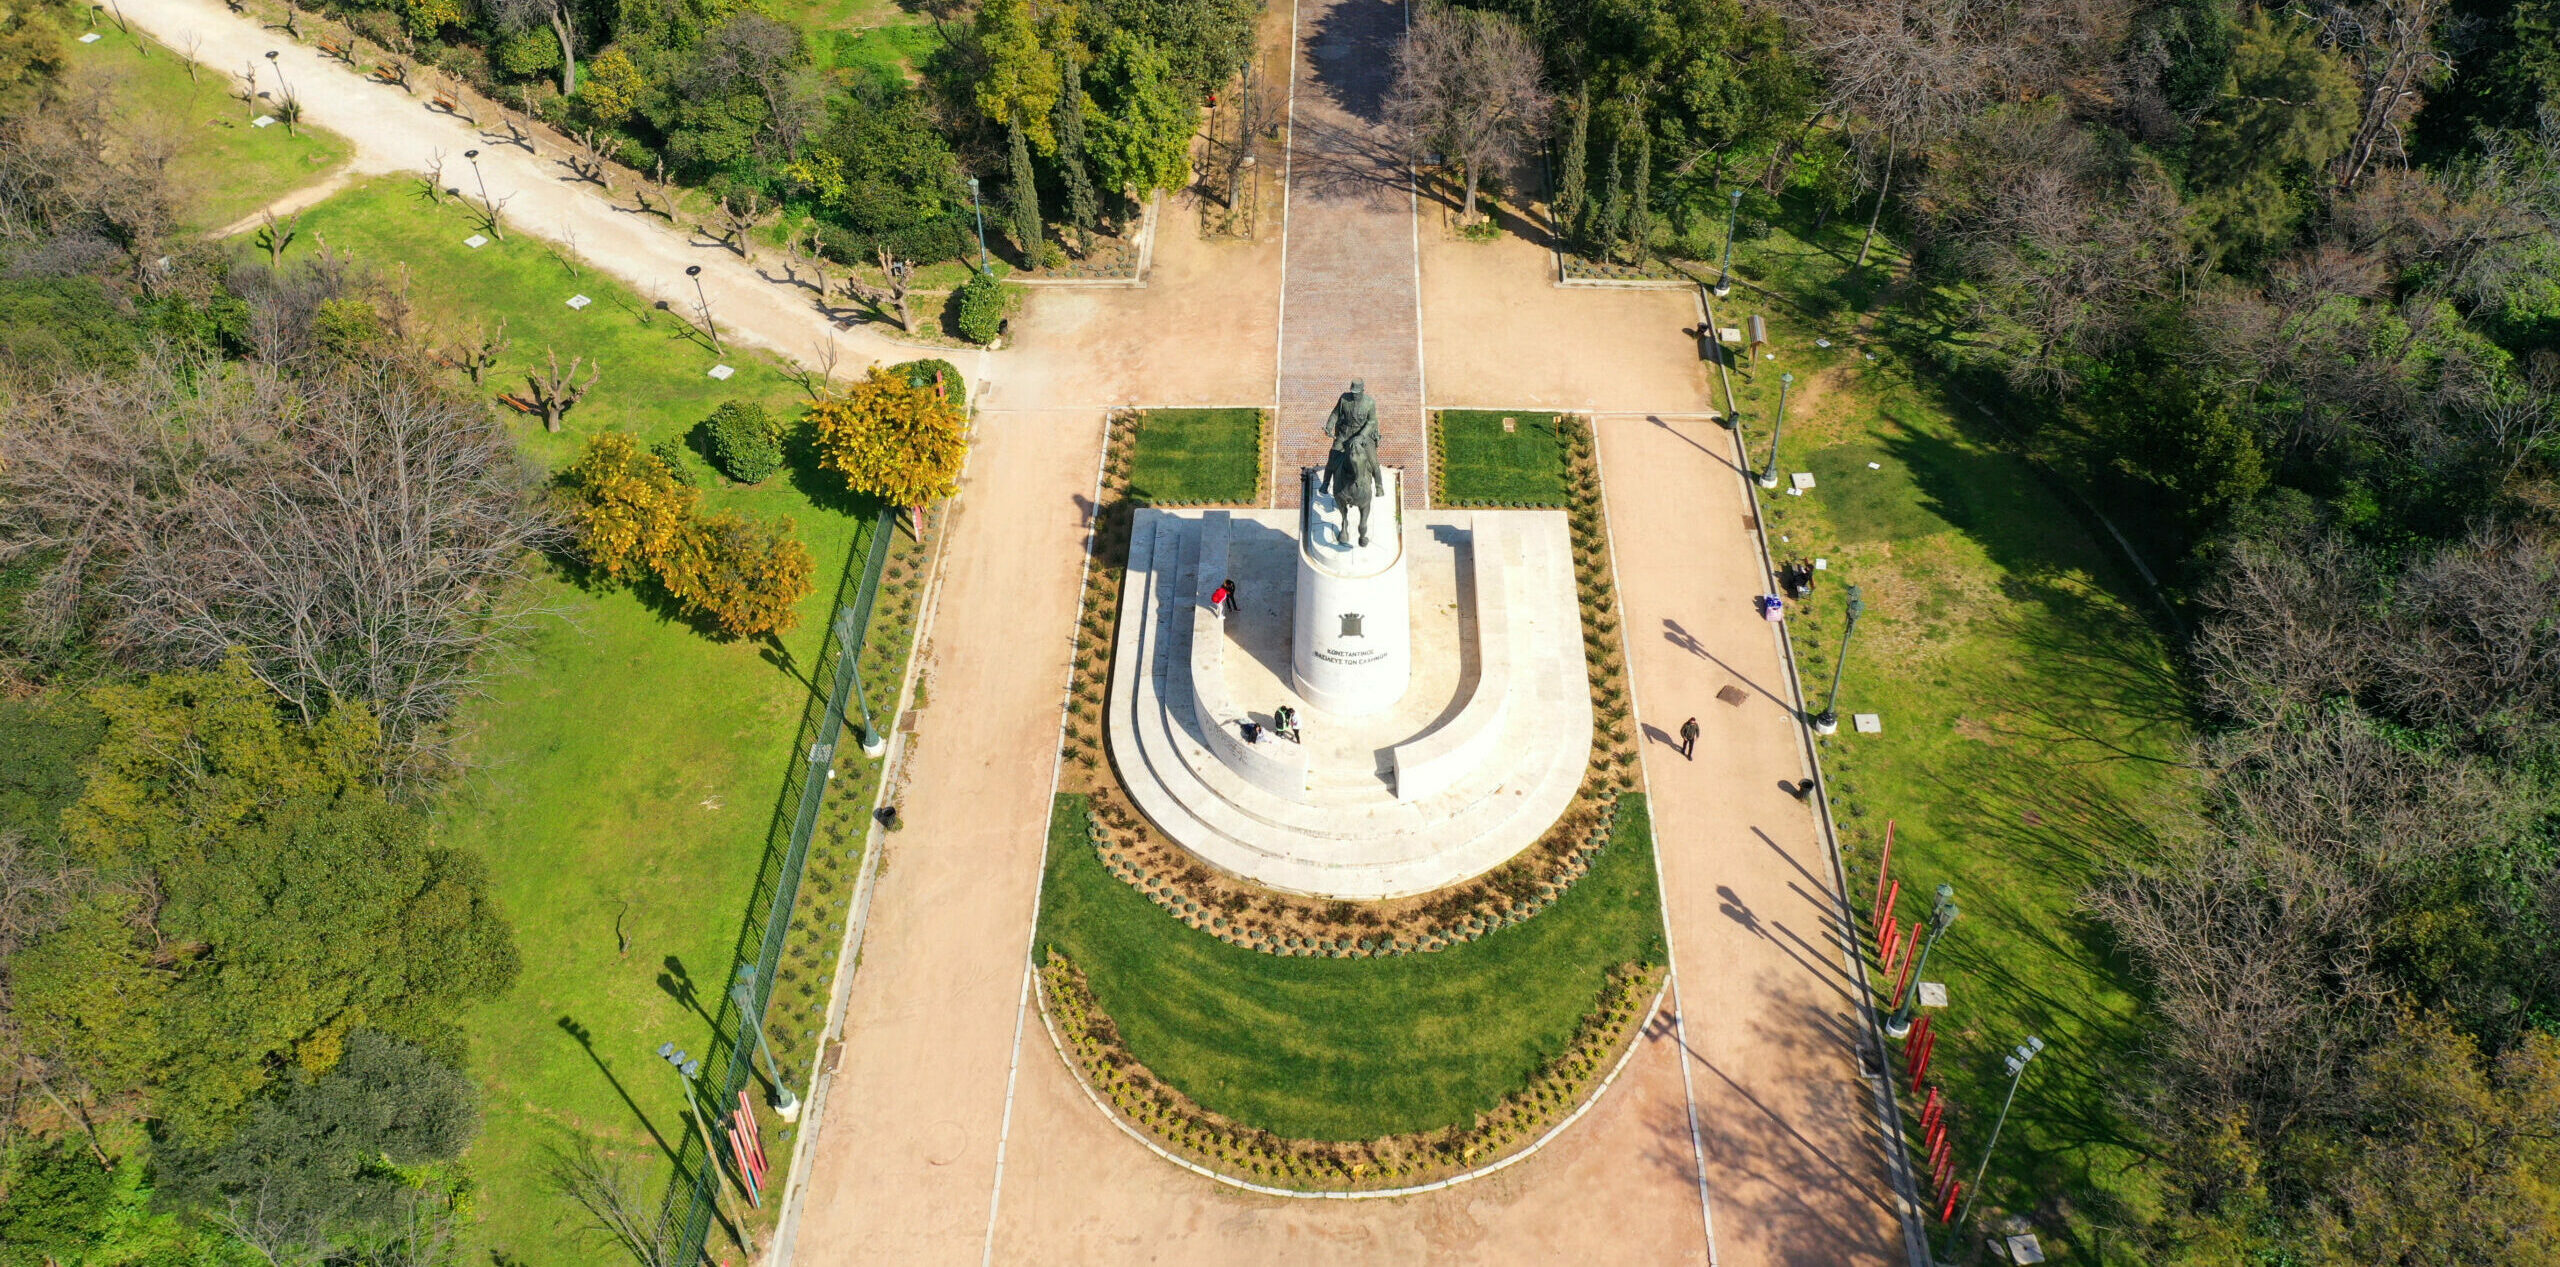 Pedion tou Areos park: why it was originally laid out